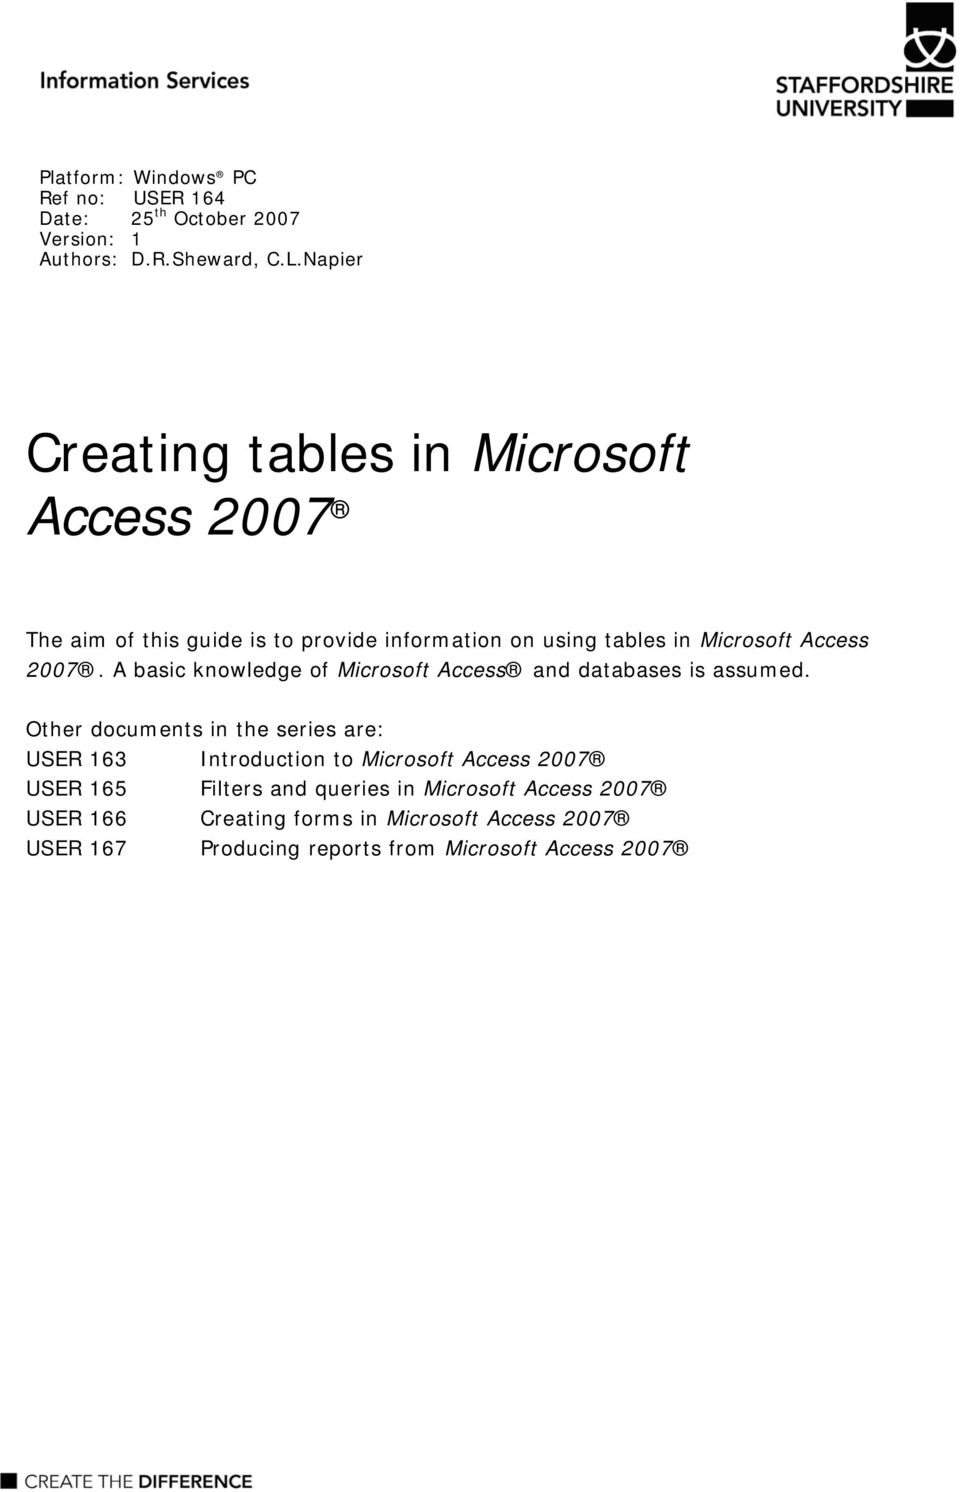 2007. A basic knowledge of Microsoft Access and databases is assumed.